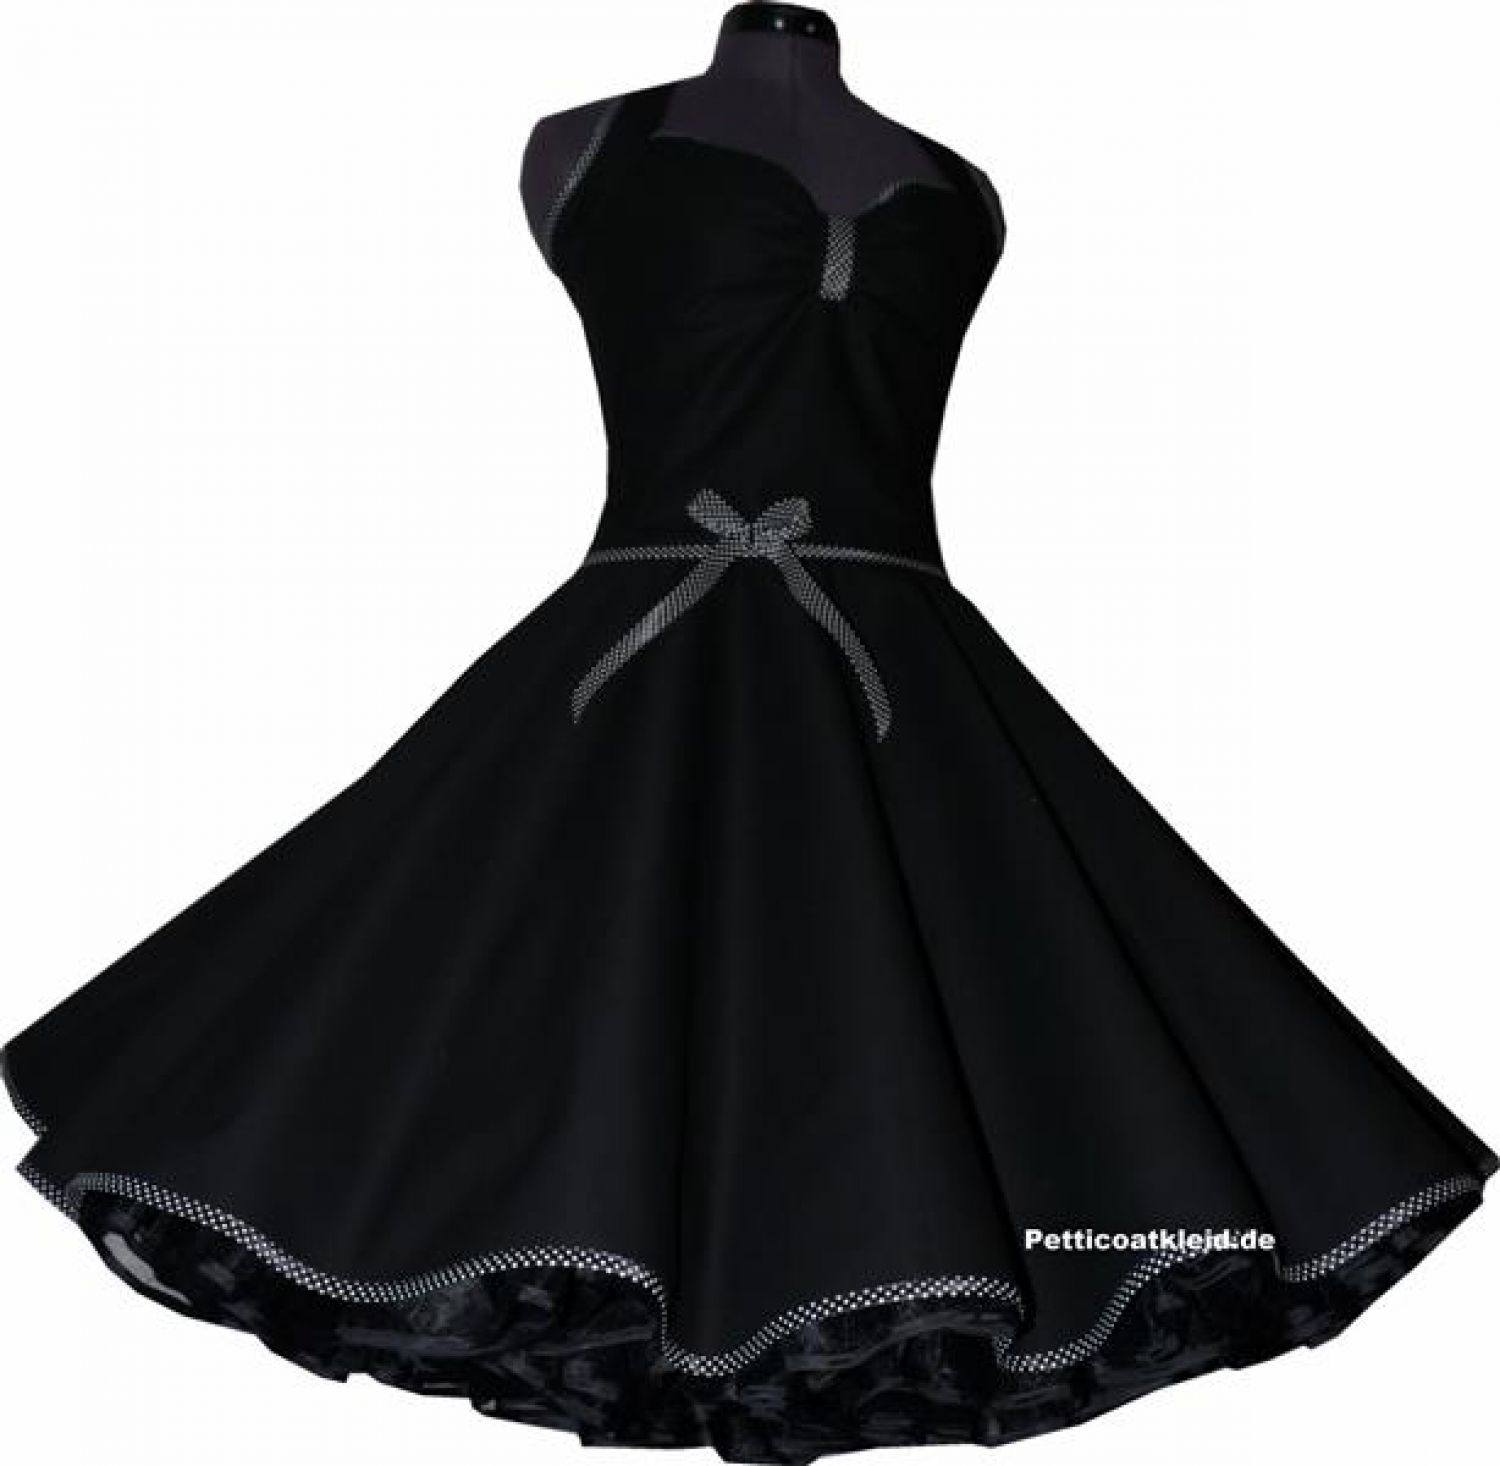 rockabilly kleid schwarz petticoat band schwarz wei e punkte jugendweihe ebay. Black Bedroom Furniture Sets. Home Design Ideas